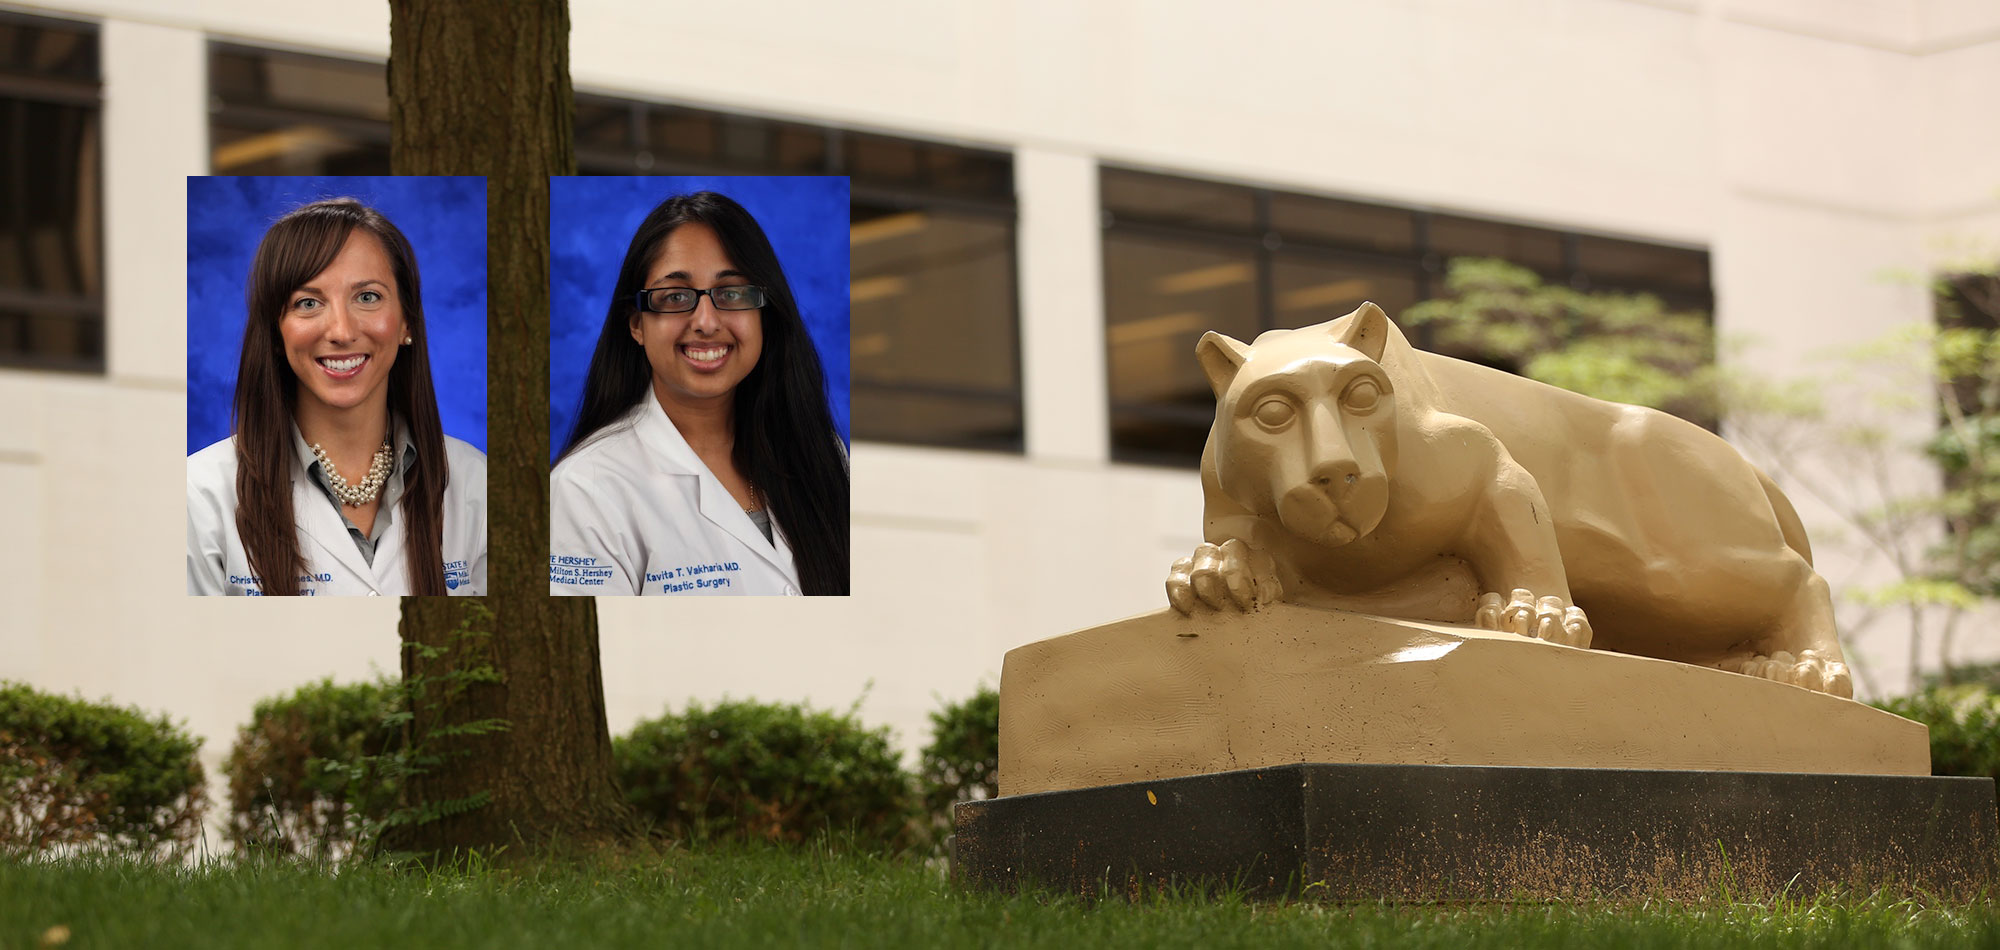 Two residents completed the Penn State Plastic Surgery Residency in 2017. At left is Christine Jones, MD, who went on to a Craniofacial Pediatric Fellowship at Cincinnati Children™s Hospital in Cincinnati, OH; at right is Kavita Vakharia, MD, who is now in a Hand Fellowship at University of New Mexico in Albuquerque, NM. Photos of the two graduates, each wearing white medical coats and standing in front of a blue photo background, are seen superimposed on a photo of the Penn State Nittany Lion statue in the College of Medicine courtyard. A building and tree are visible in the background.